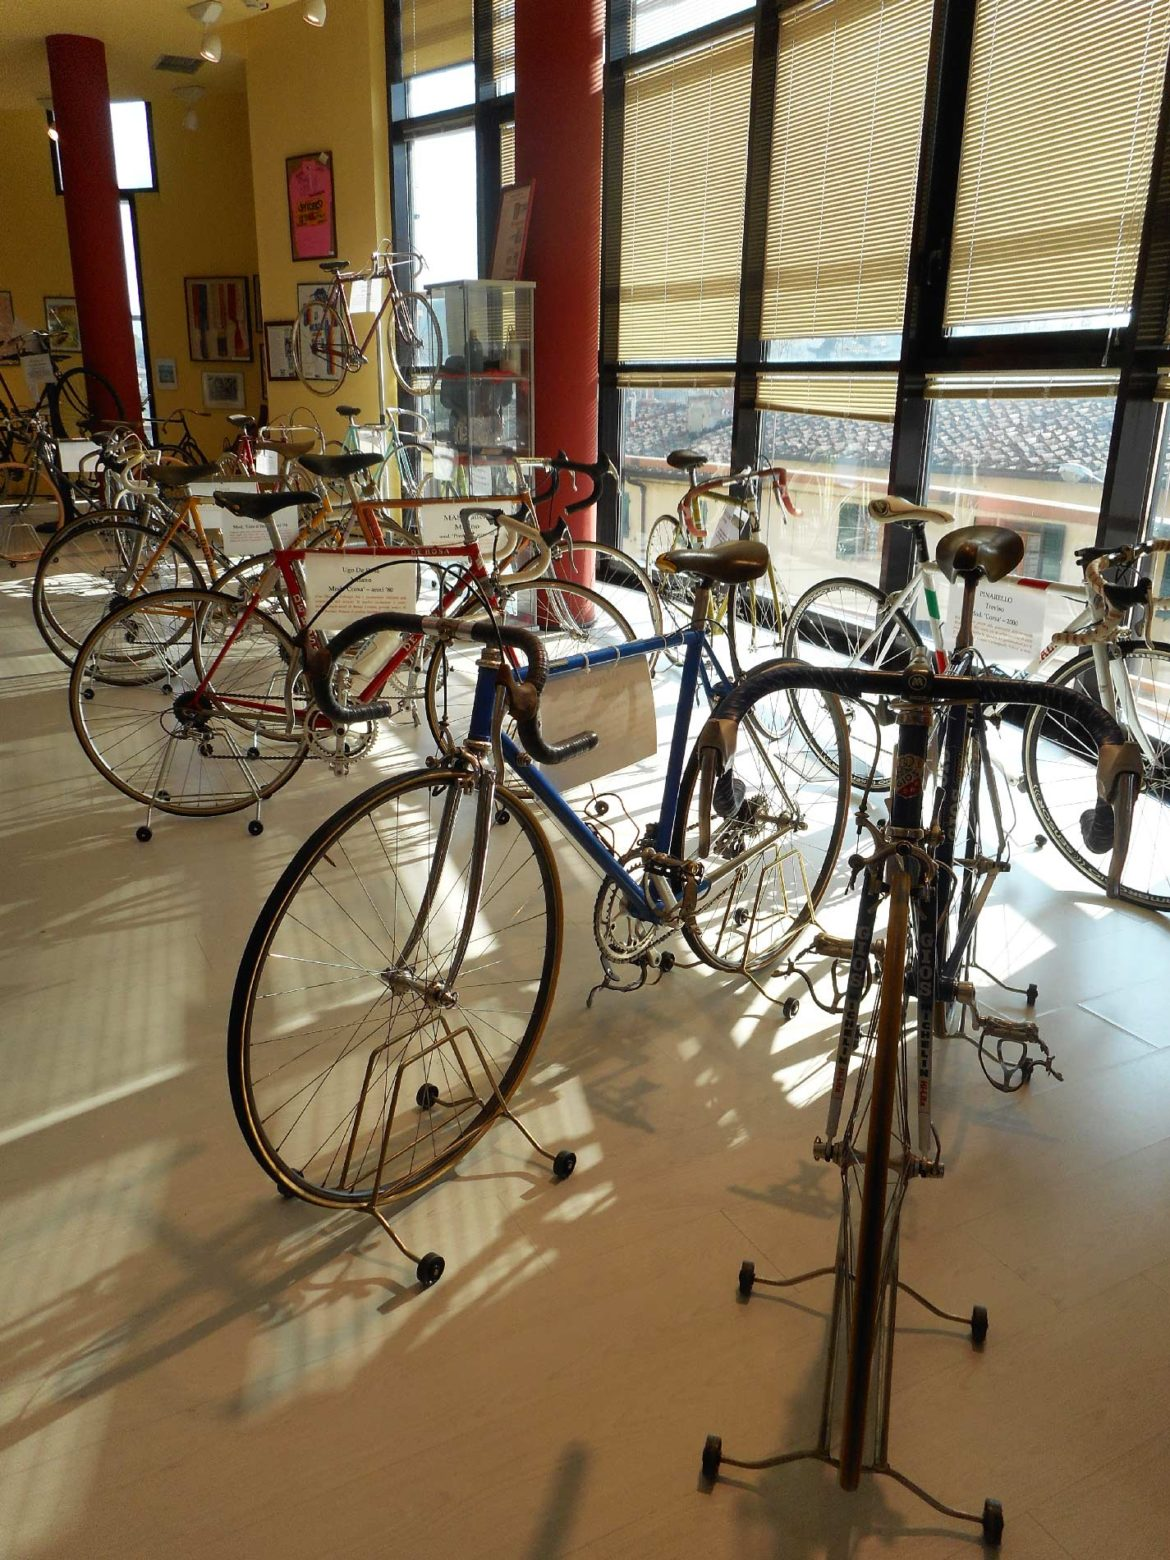 MEETINGS OF SPORT AND HISTORY AT THE GINO BARTALI CYCLING MUSEUM